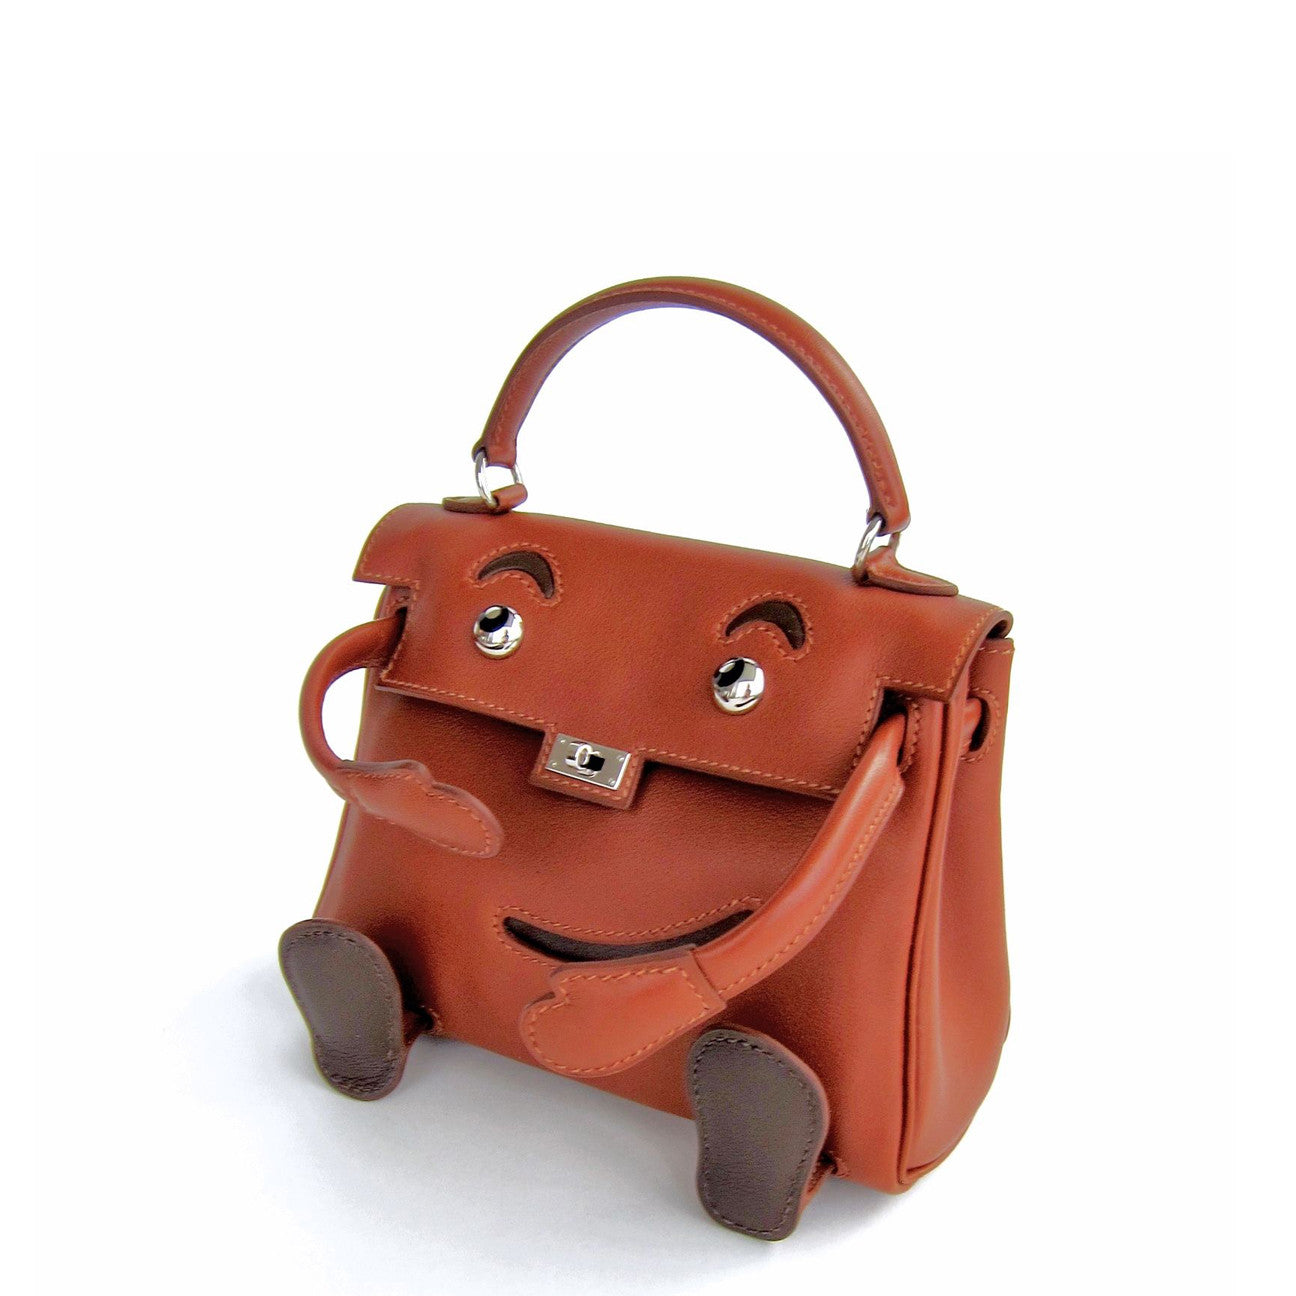 ac681a4727b5 Limited Edition Noisette Leather Quelle Idole Kelly Doll Bag - Chicjoy